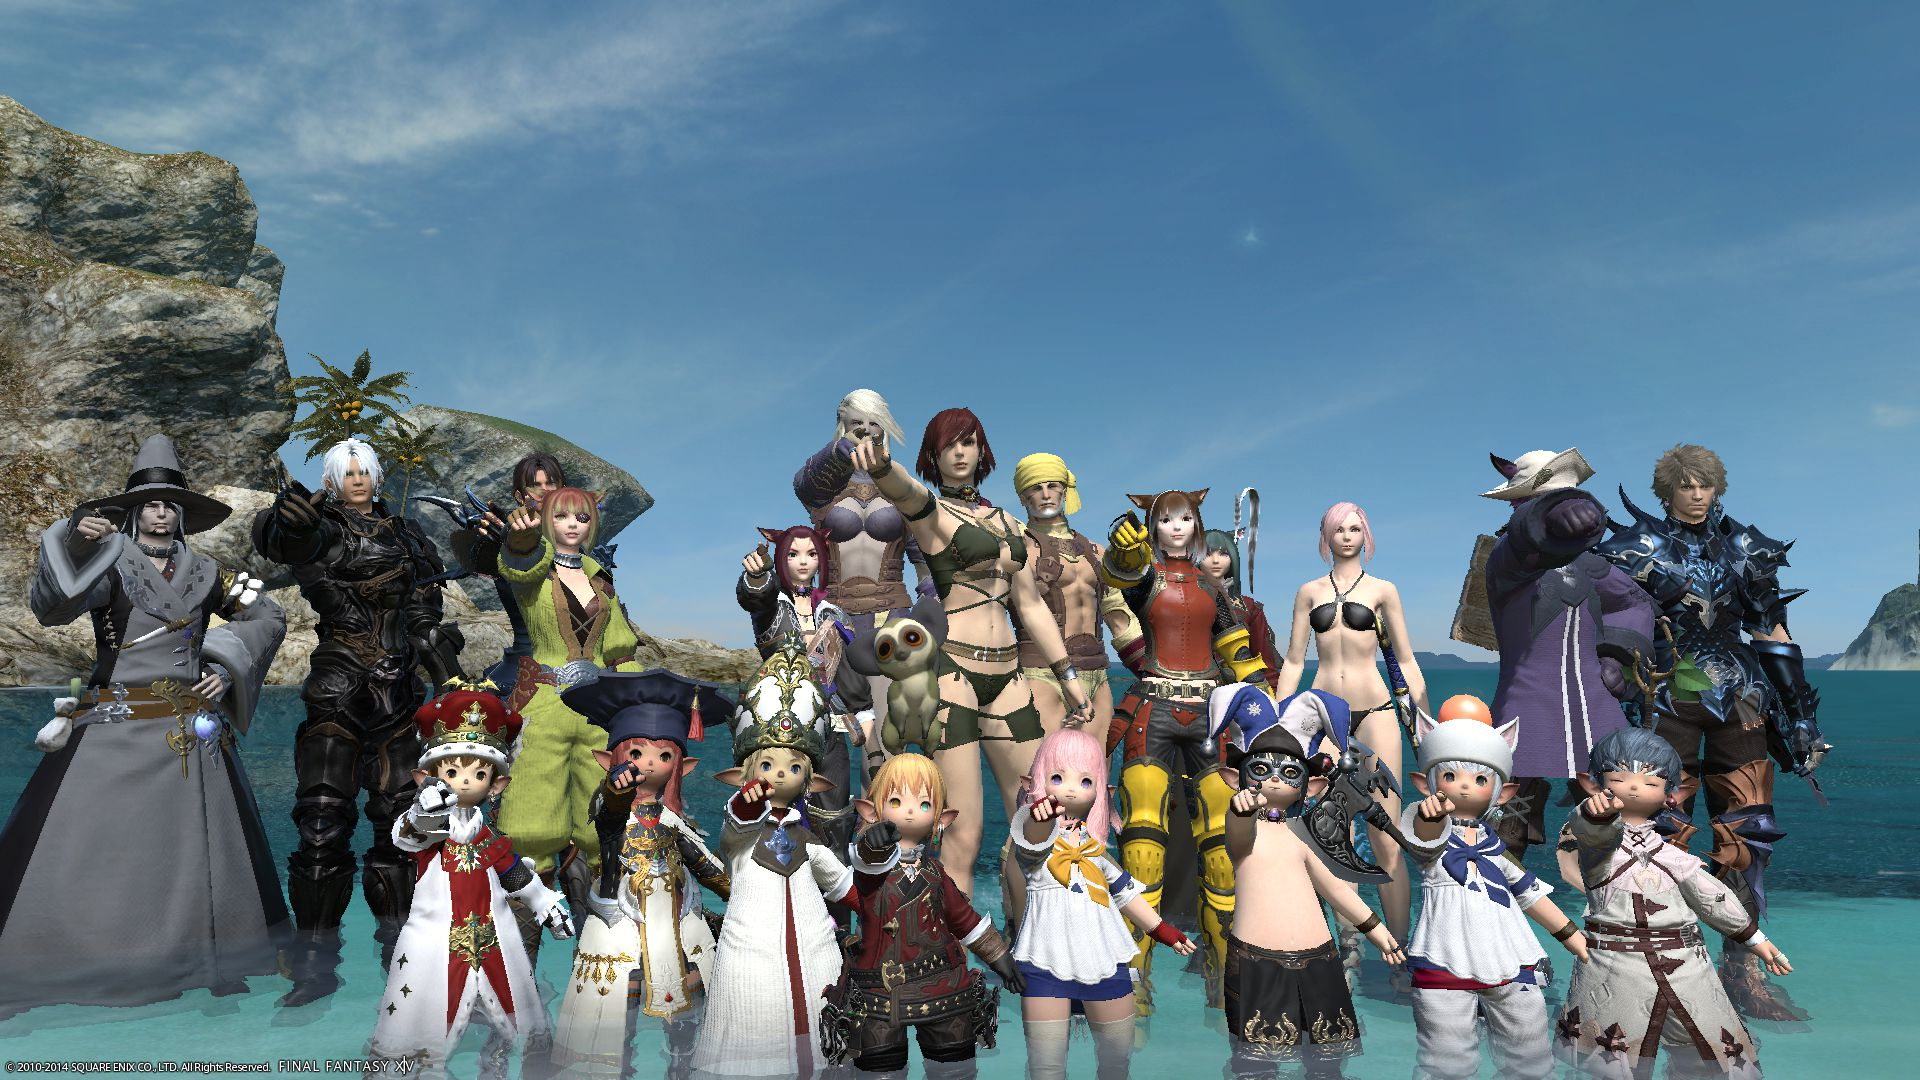 Final Fantasy XIV Population